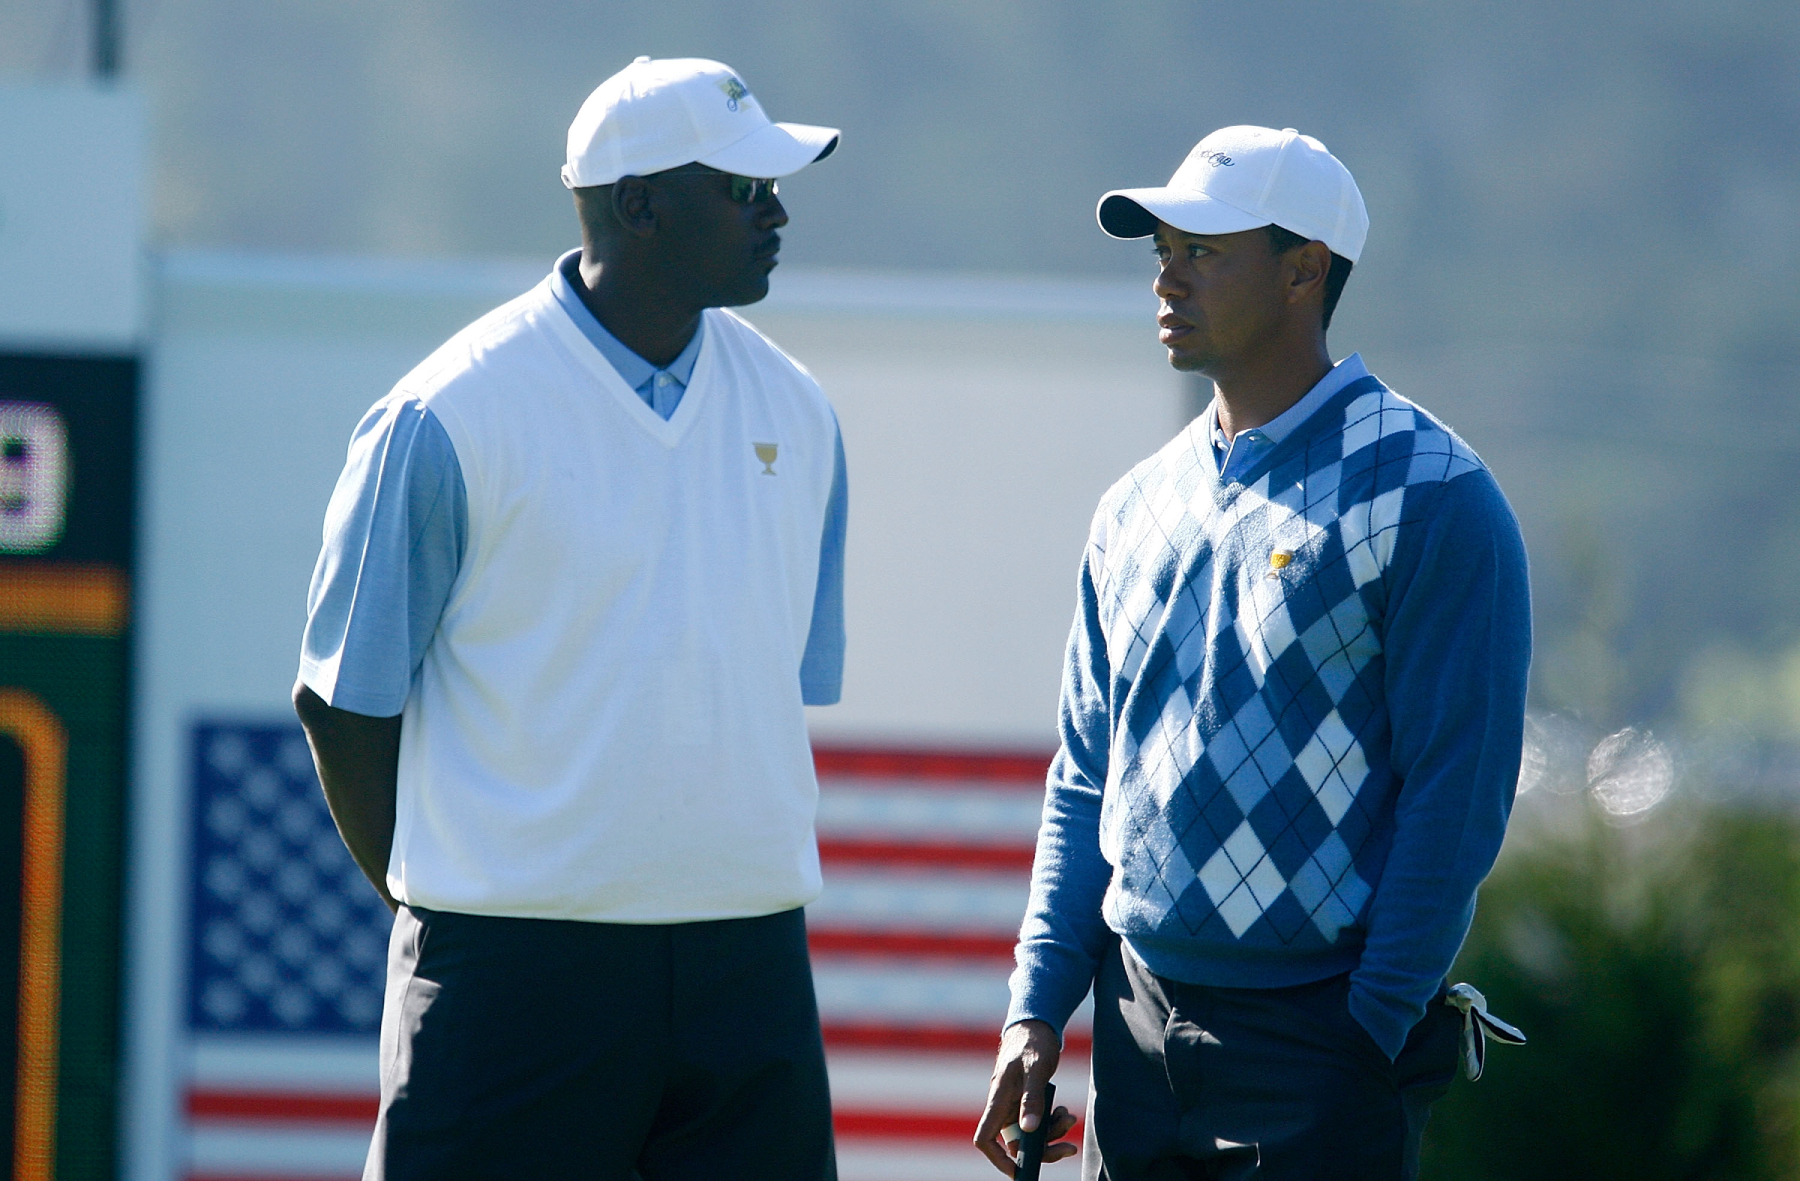 Michael Jordan and Tiger Woods have both meant a lot to their respective sports. Jordan certainly has some high praise for Woods.